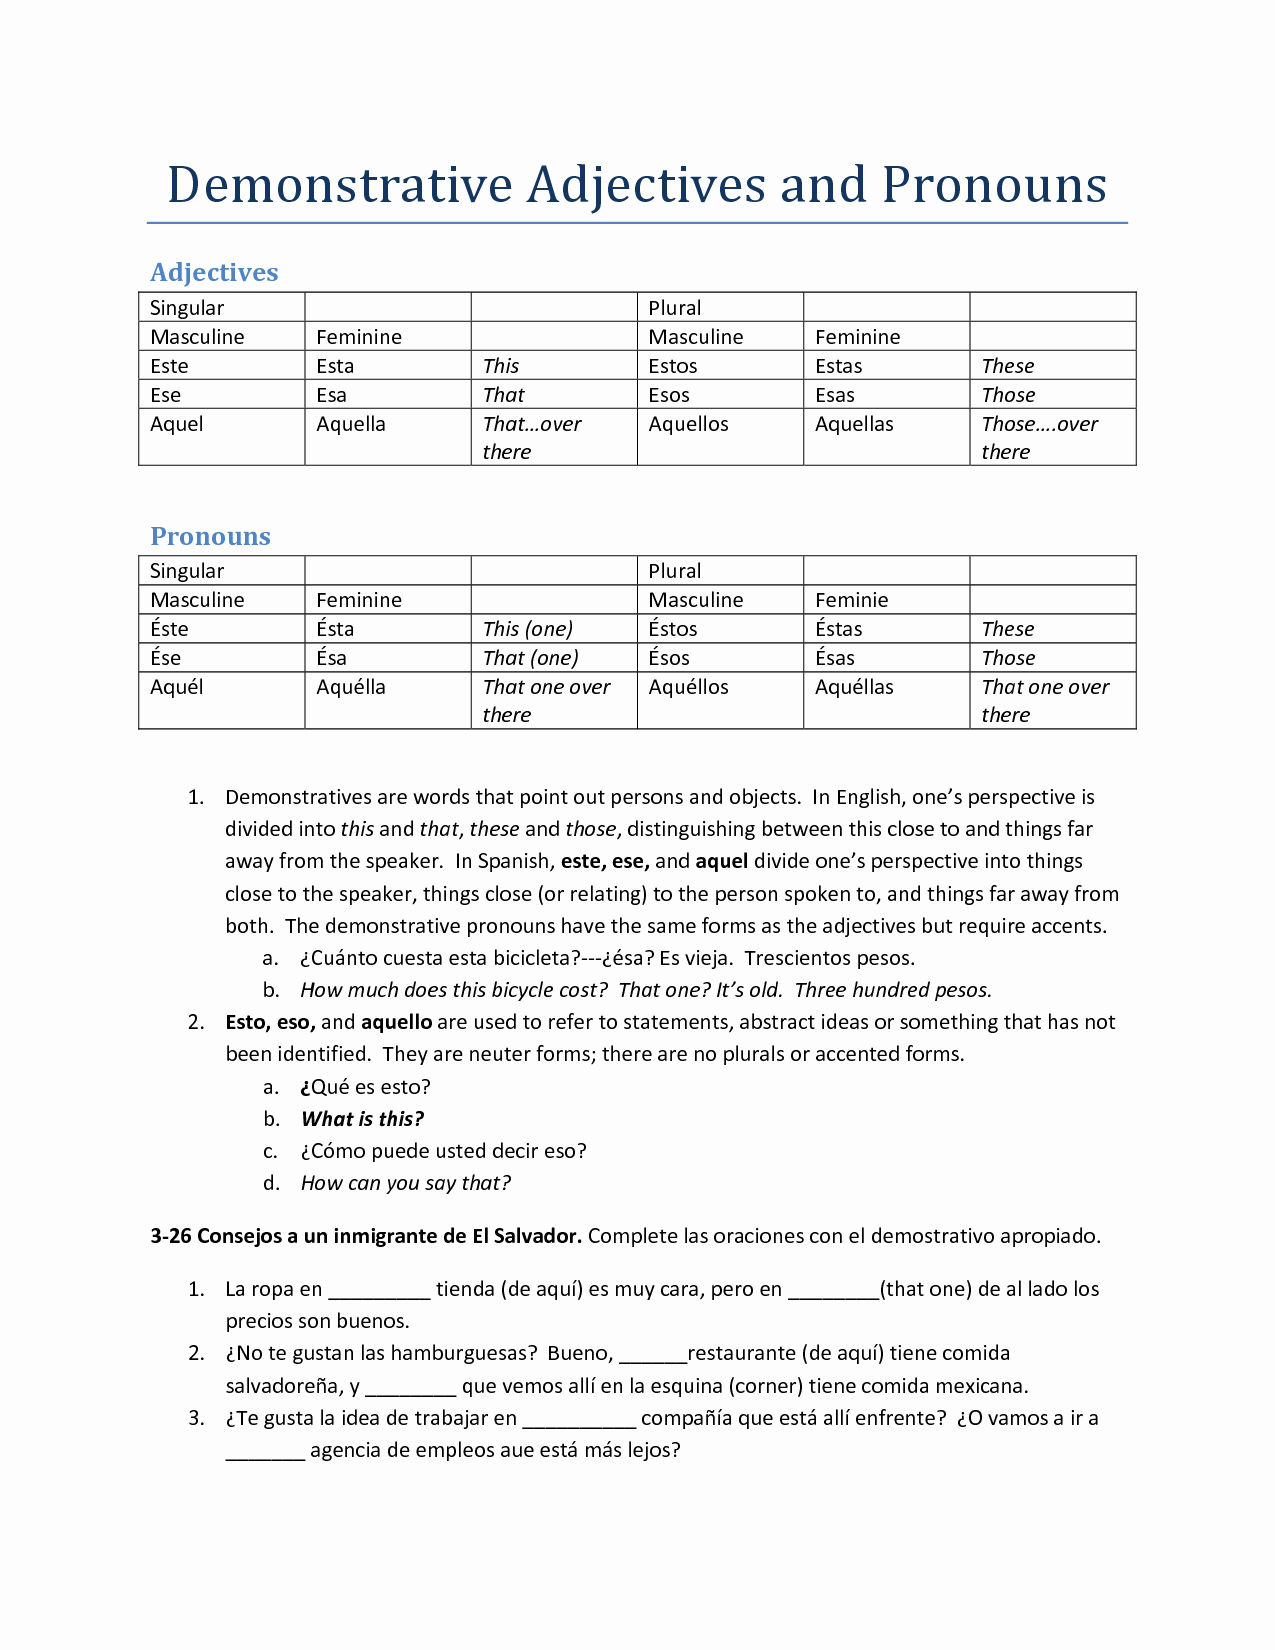 Demonstrative Adjectives Spanish Worksheet Best Of 17 Best Of Spanish Demonstrative Adjectives